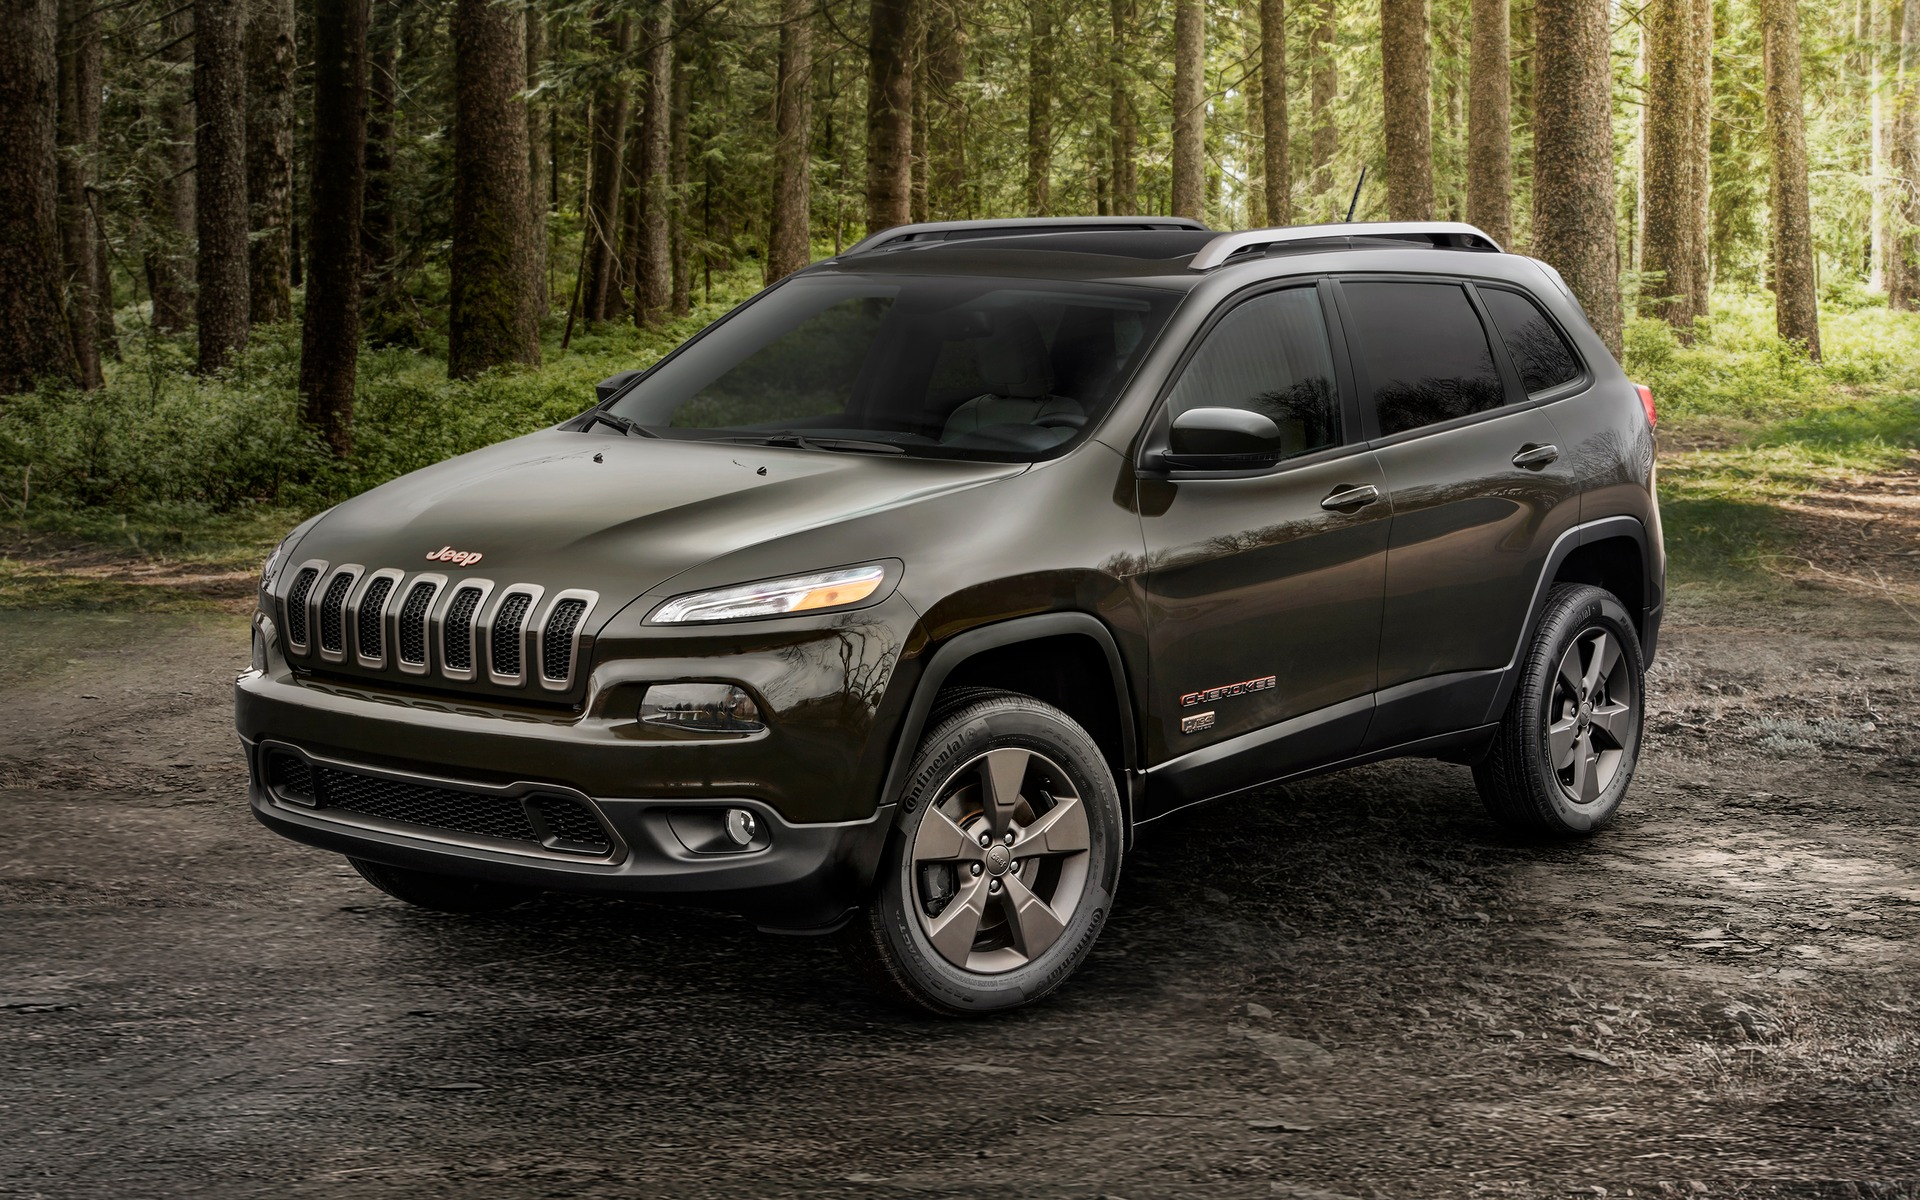 2017 jeep cherokee news reviews picture galleries and videos 2017 jeep cherokee news reviews picture galleries and videos the car guide freerunsca Images